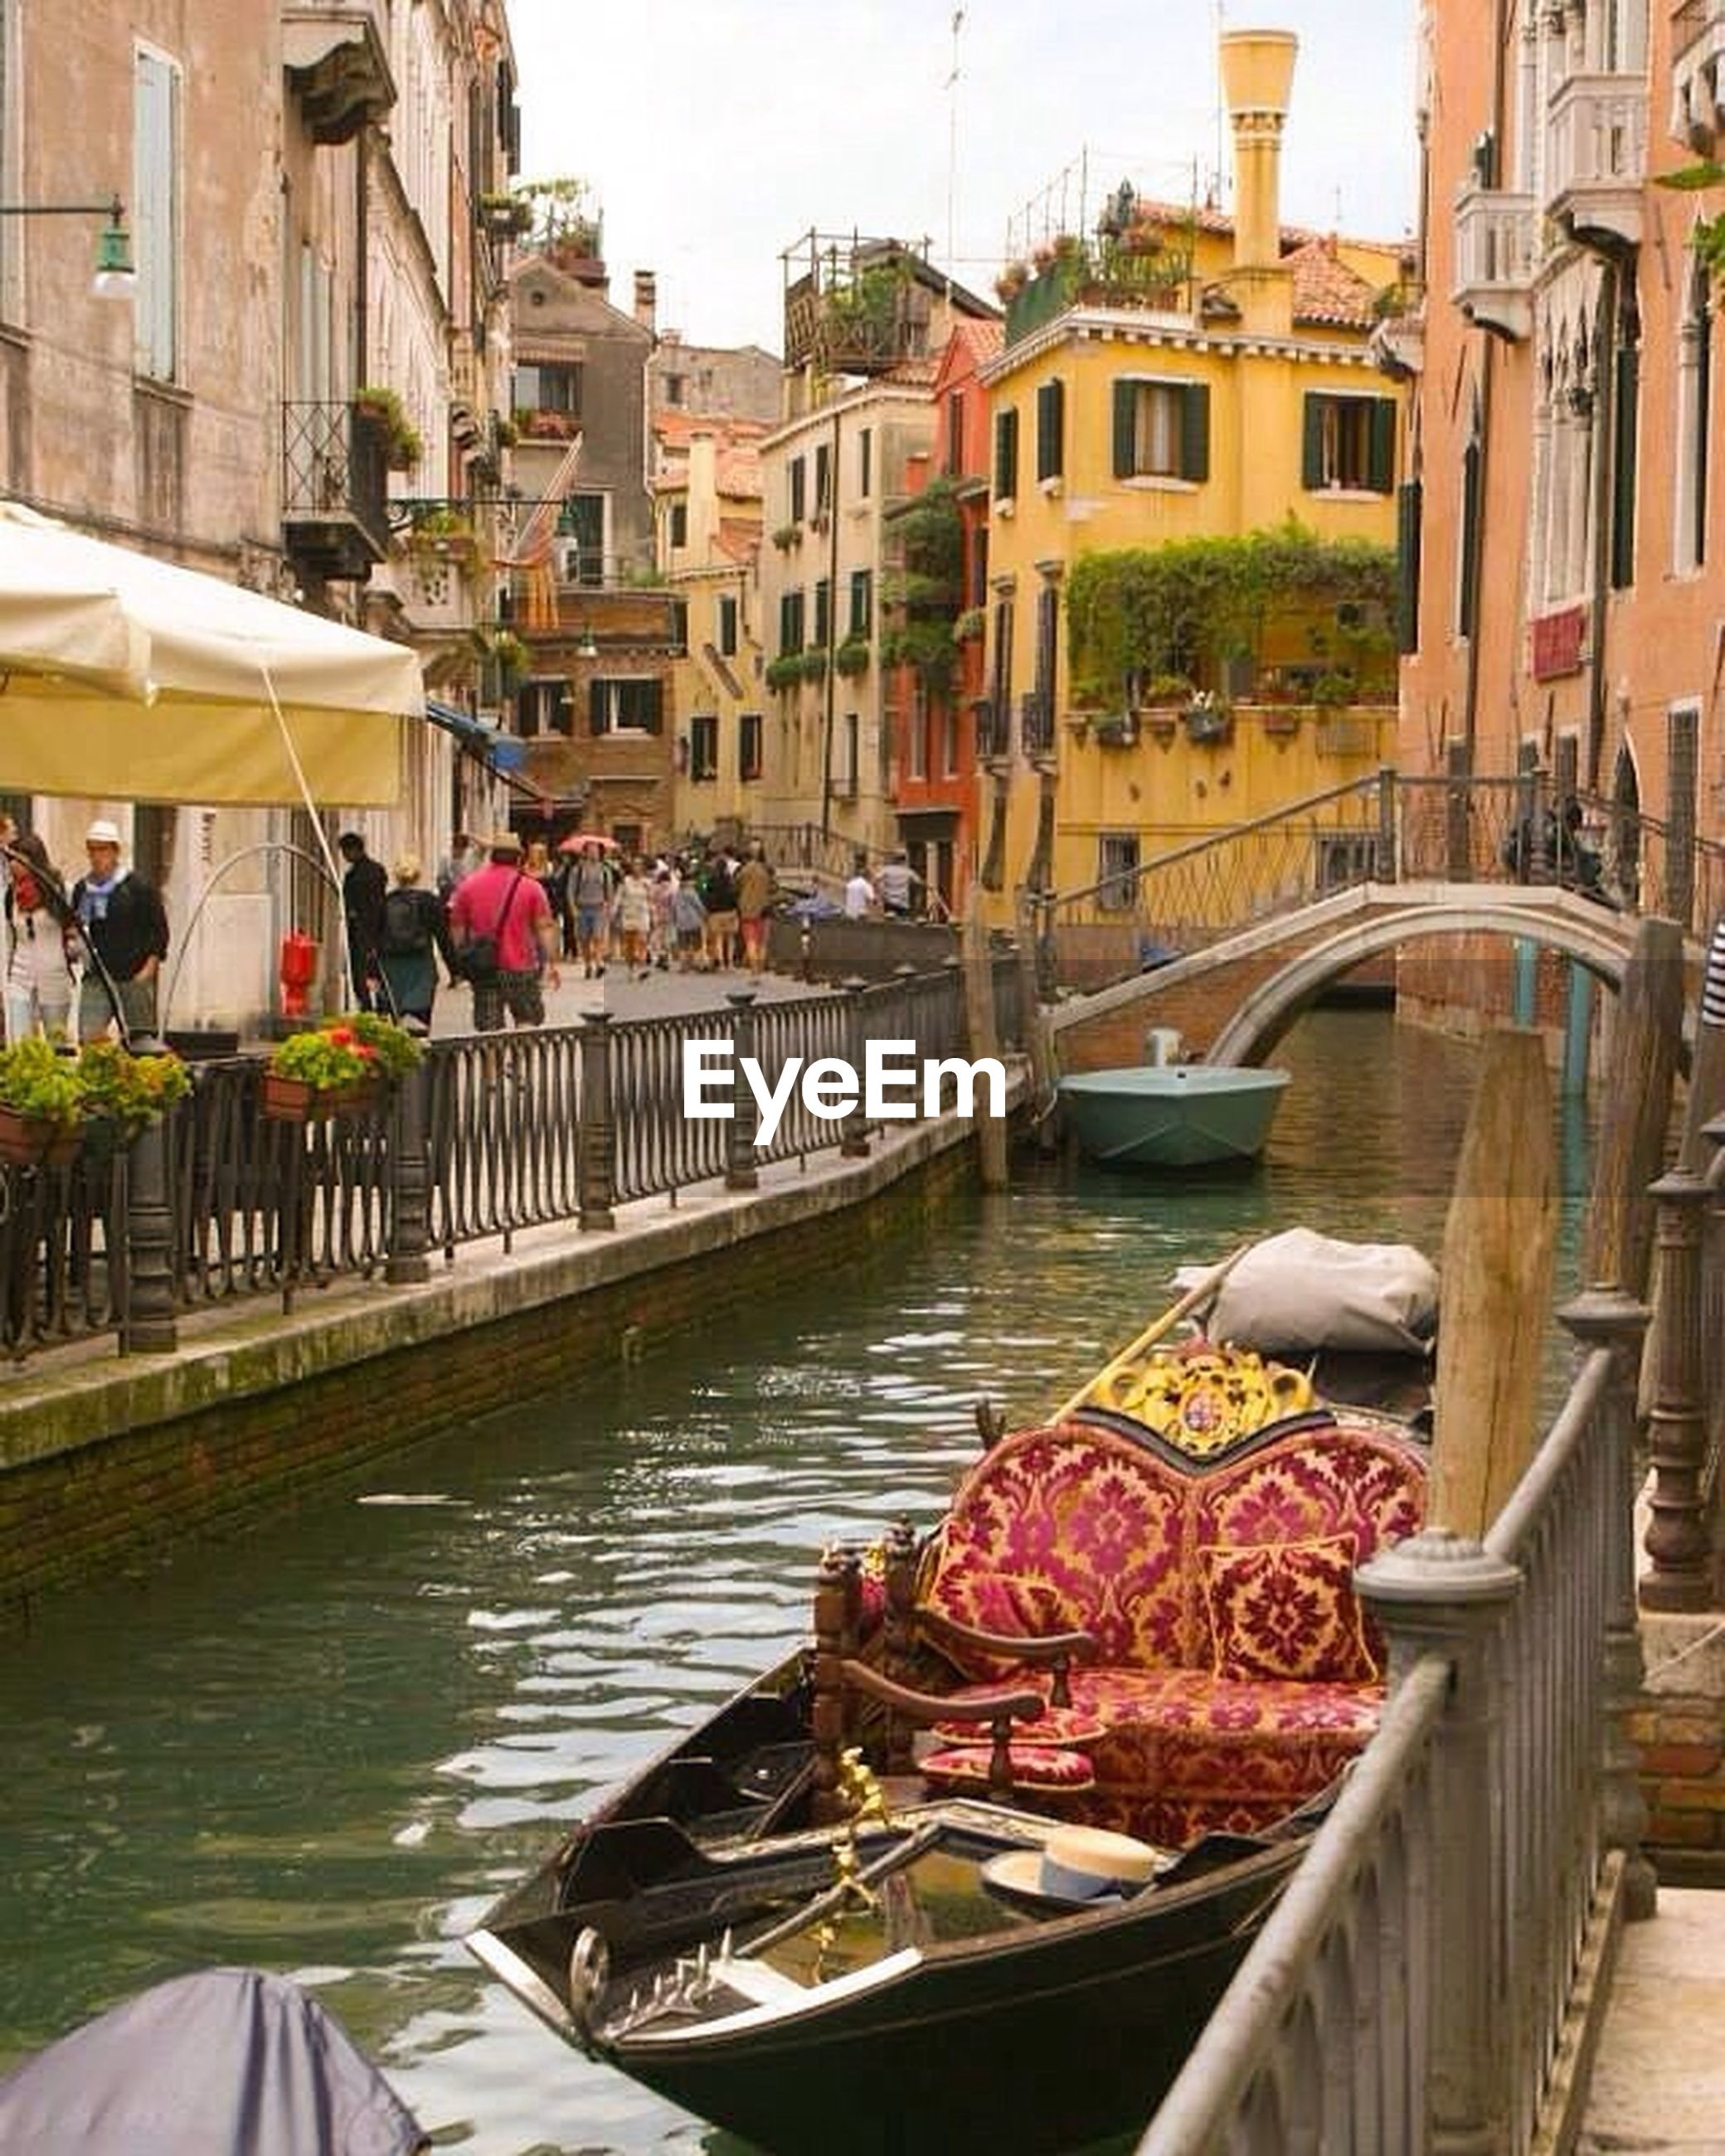 architecture, built structure, building exterior, men, person, water, canal, lifestyles, railing, market stall, day, incidental people, nautical vessel, large group of people, city, leisure activity, food and drink, market, outdoors